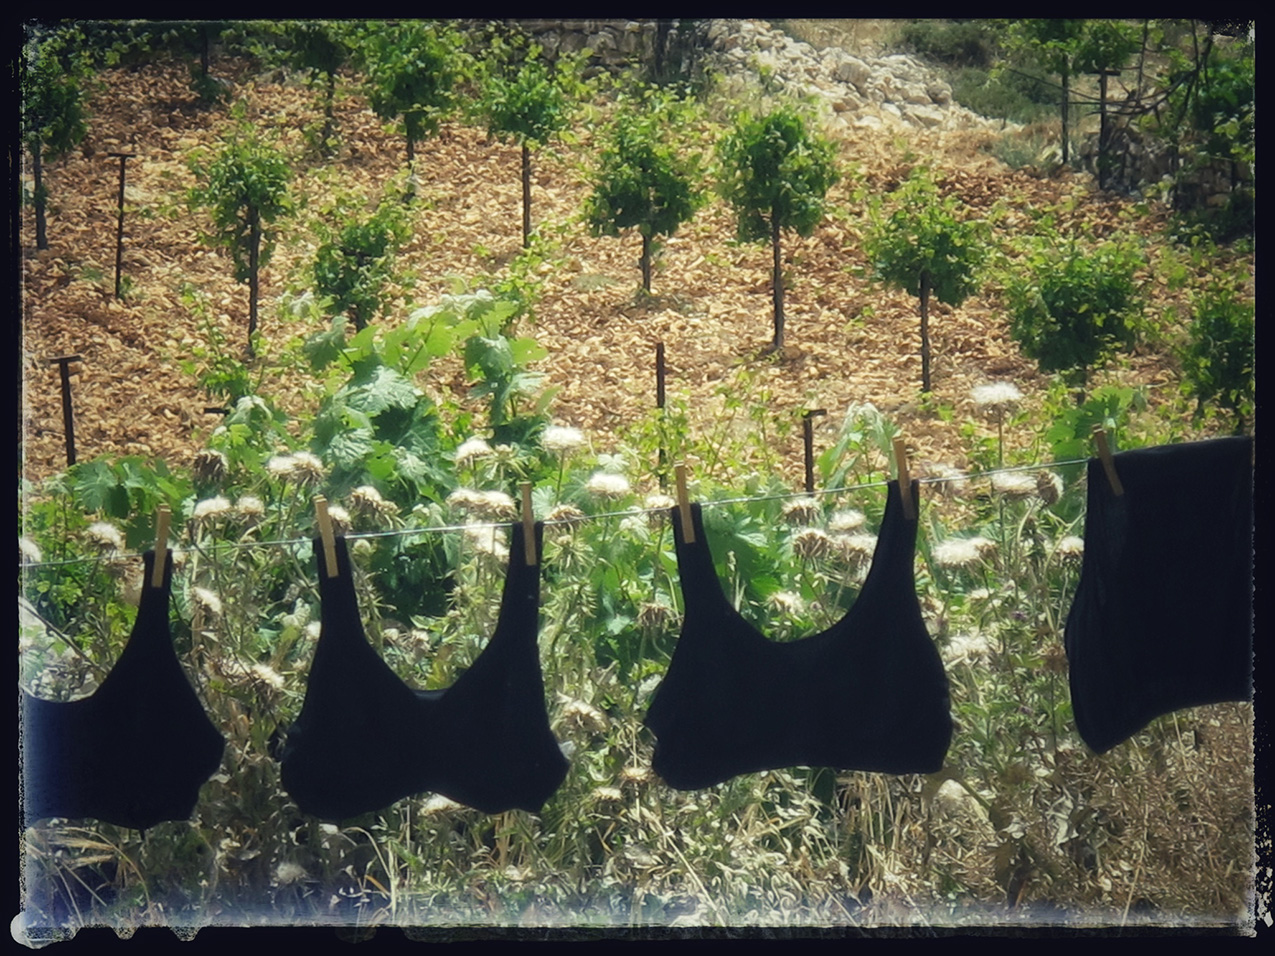 black bras hanging on a clothes line with an orchard in the background